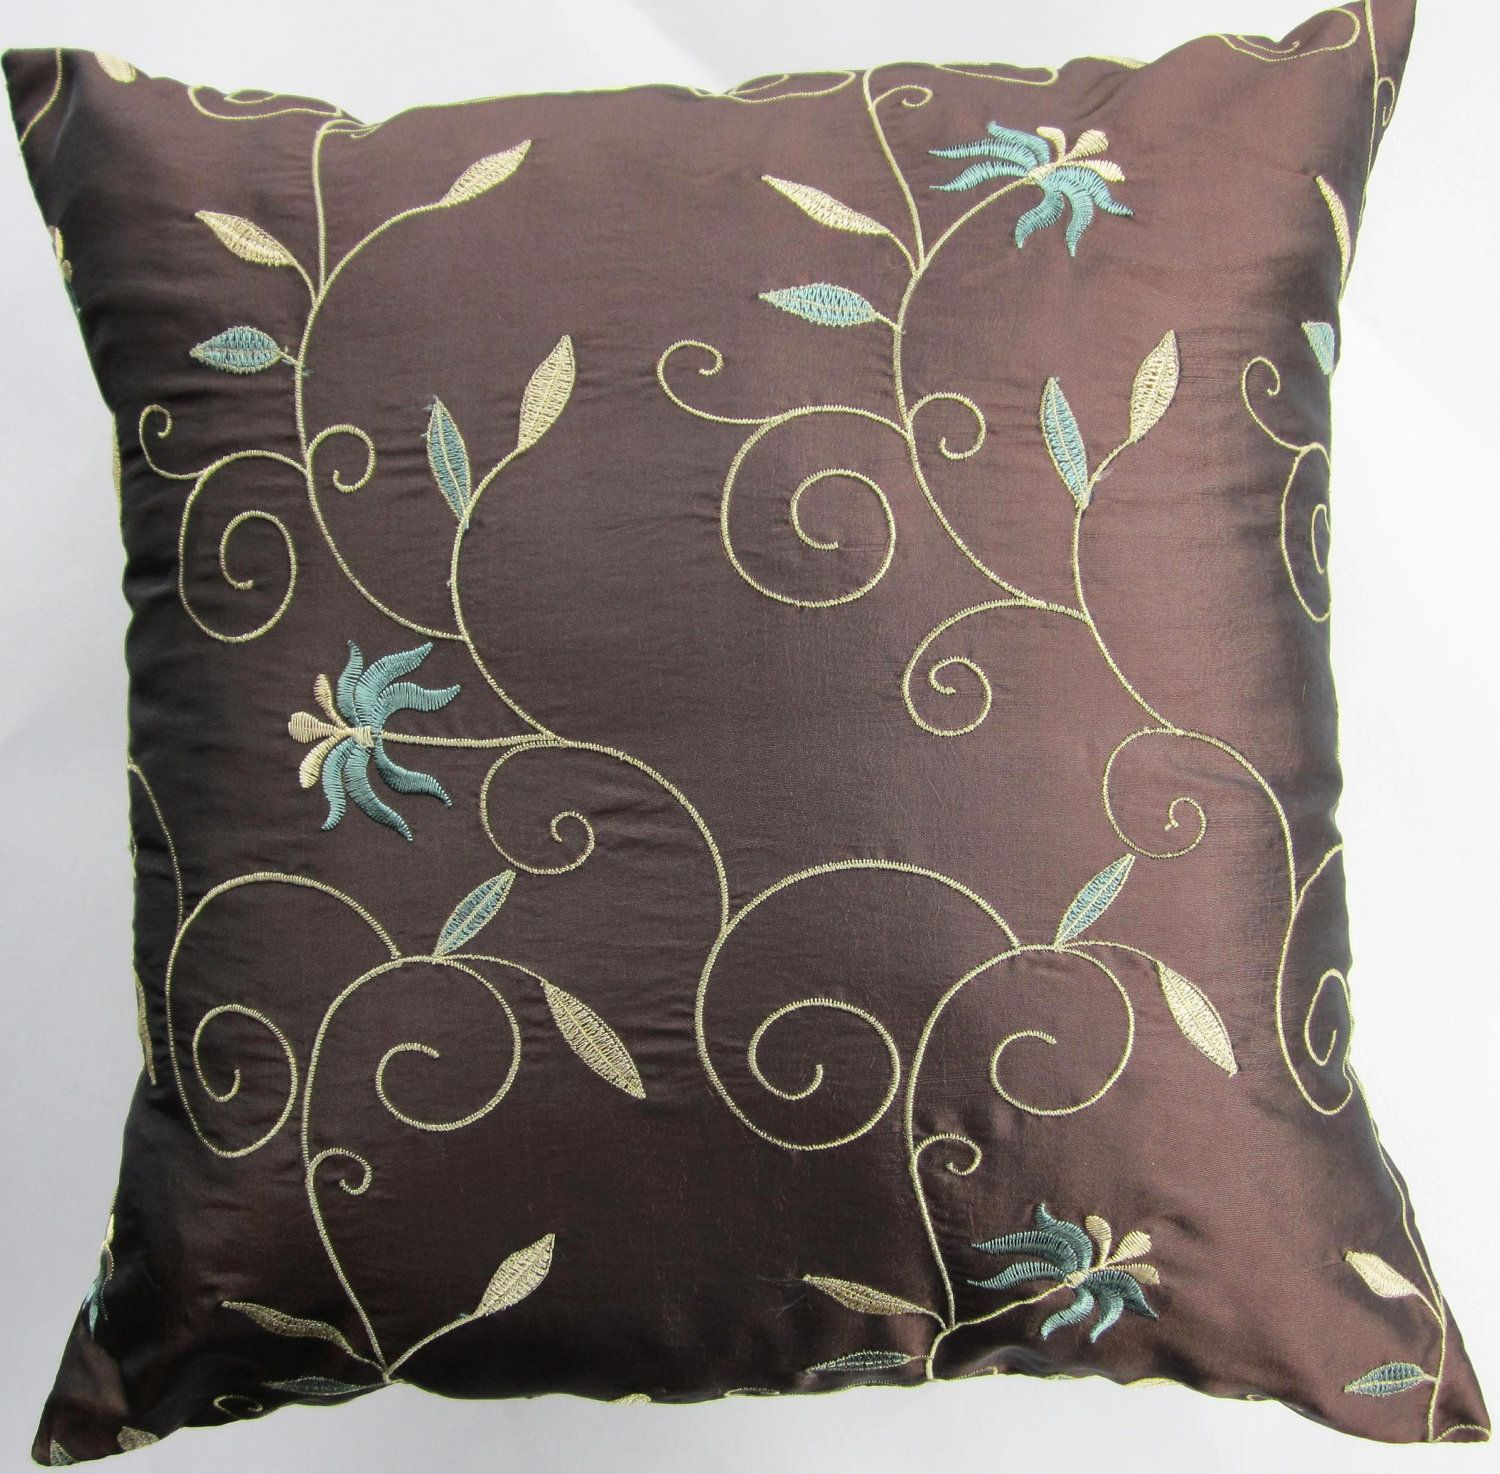 pillow wells salient teal velvet mind throw pillows original fanciful letter gracious blue namaste ah bed colored with as bright plus nod kess